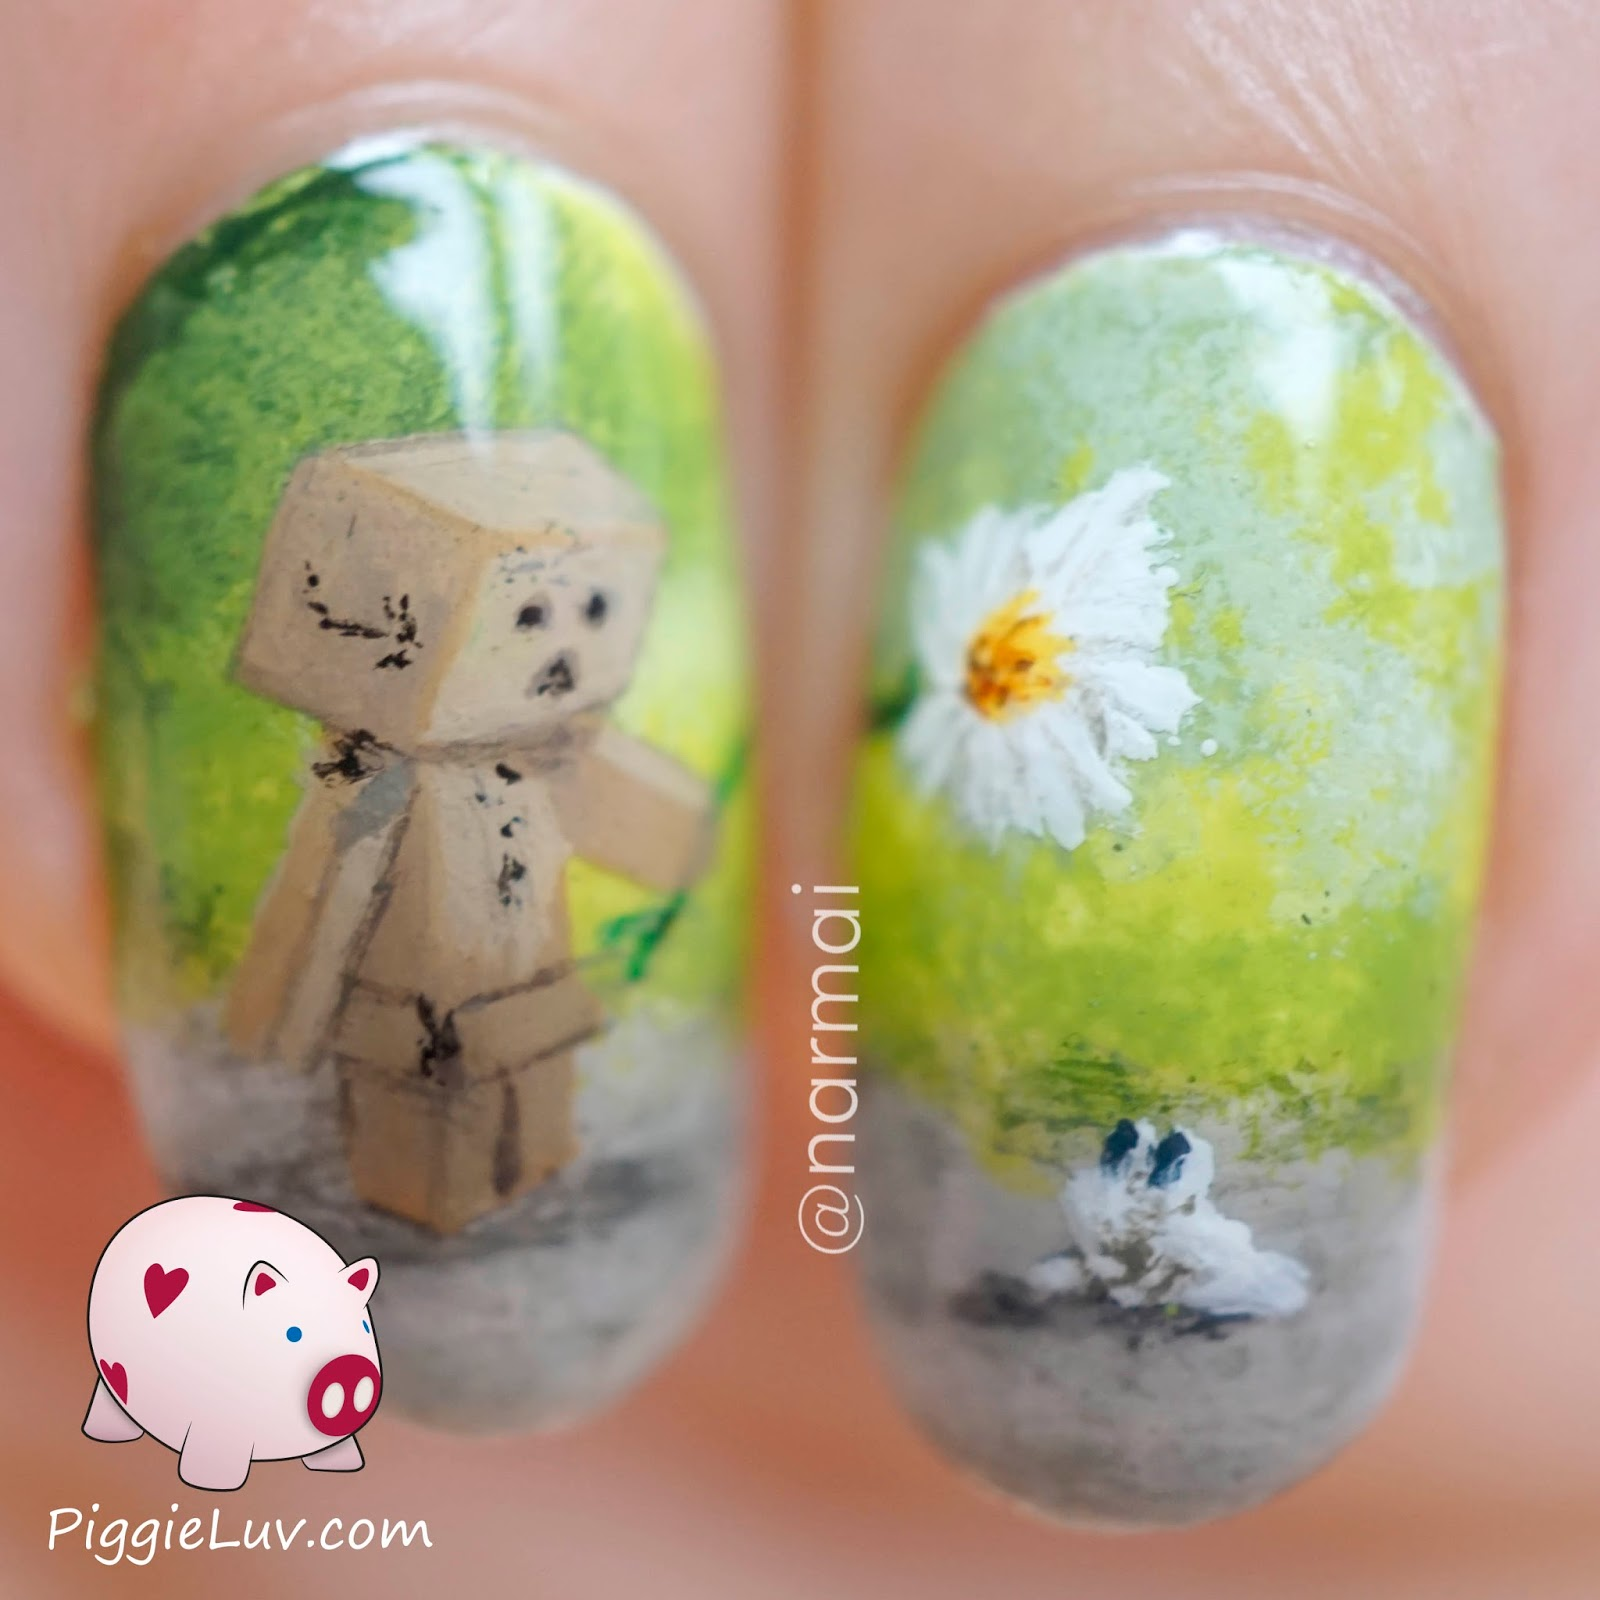 cute painted nail designs